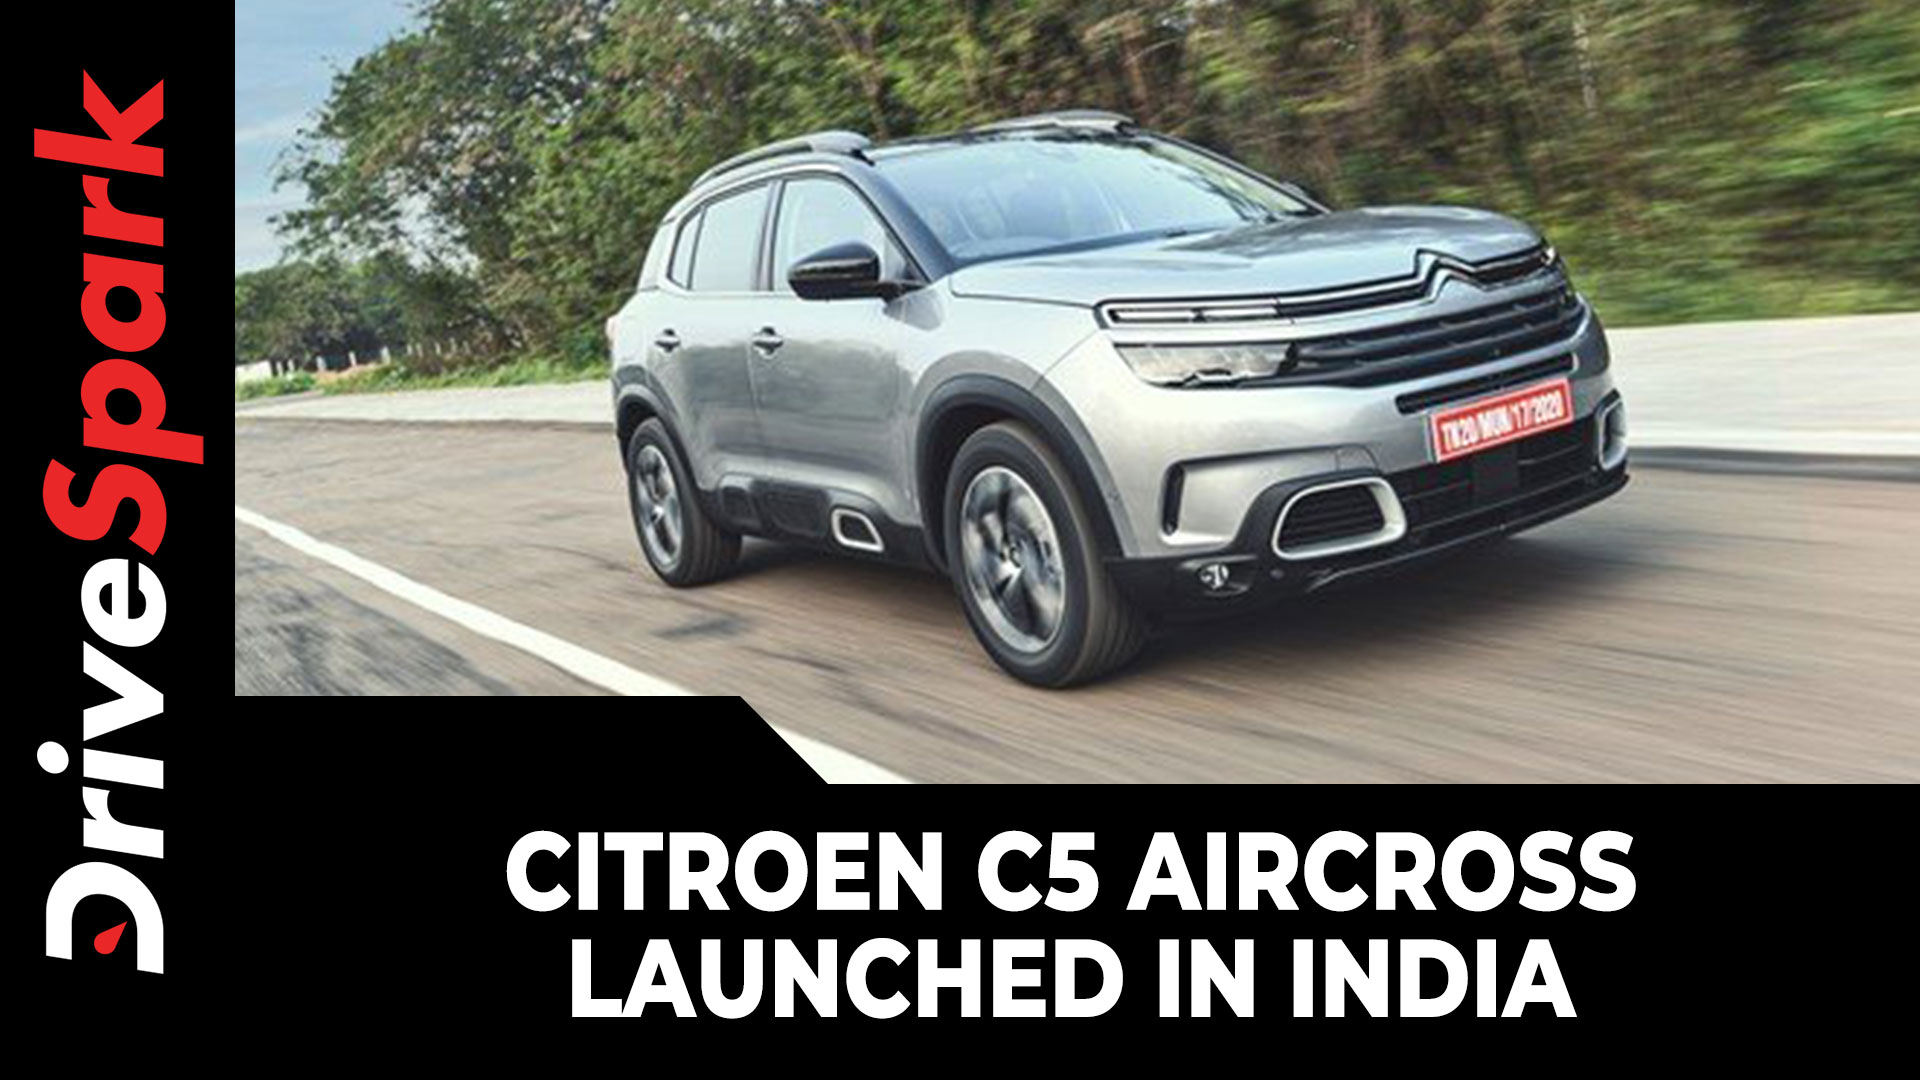 Citroen C5 Aircross Launched In India | Price, Specs, Features & Other Details